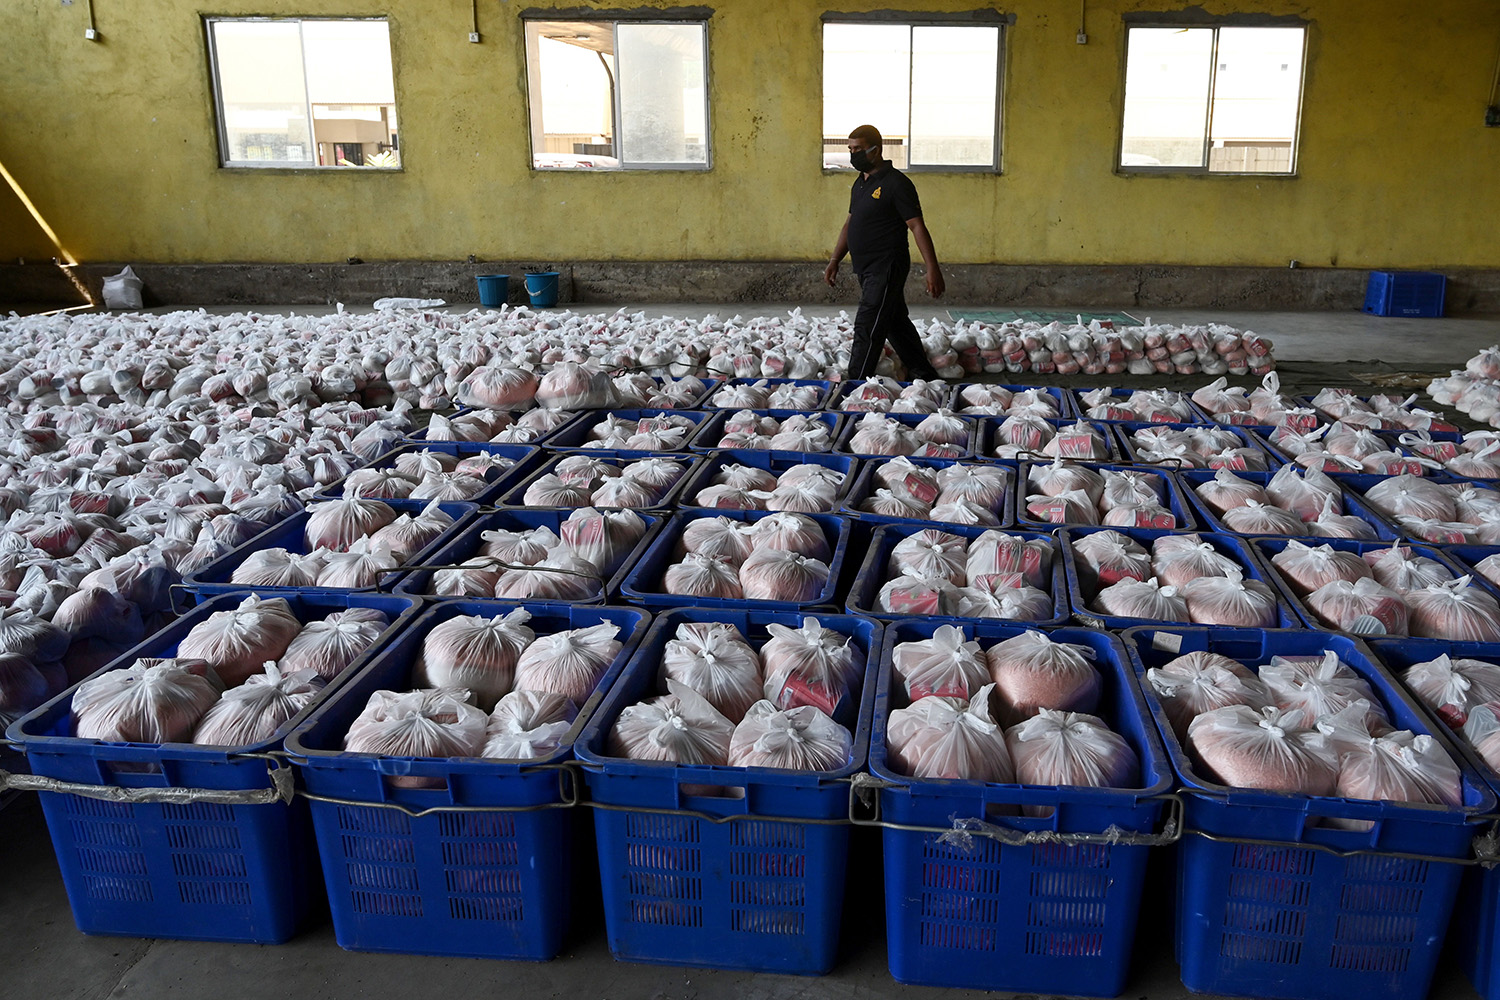 A member of the Sri Lanka Civil Security Force walks among packages of dry rations of food and commodities to be distributed at a warehouse near Colombo on March 25. LAKRUWAN WANNIARACHCHI/AFP via Getty Images